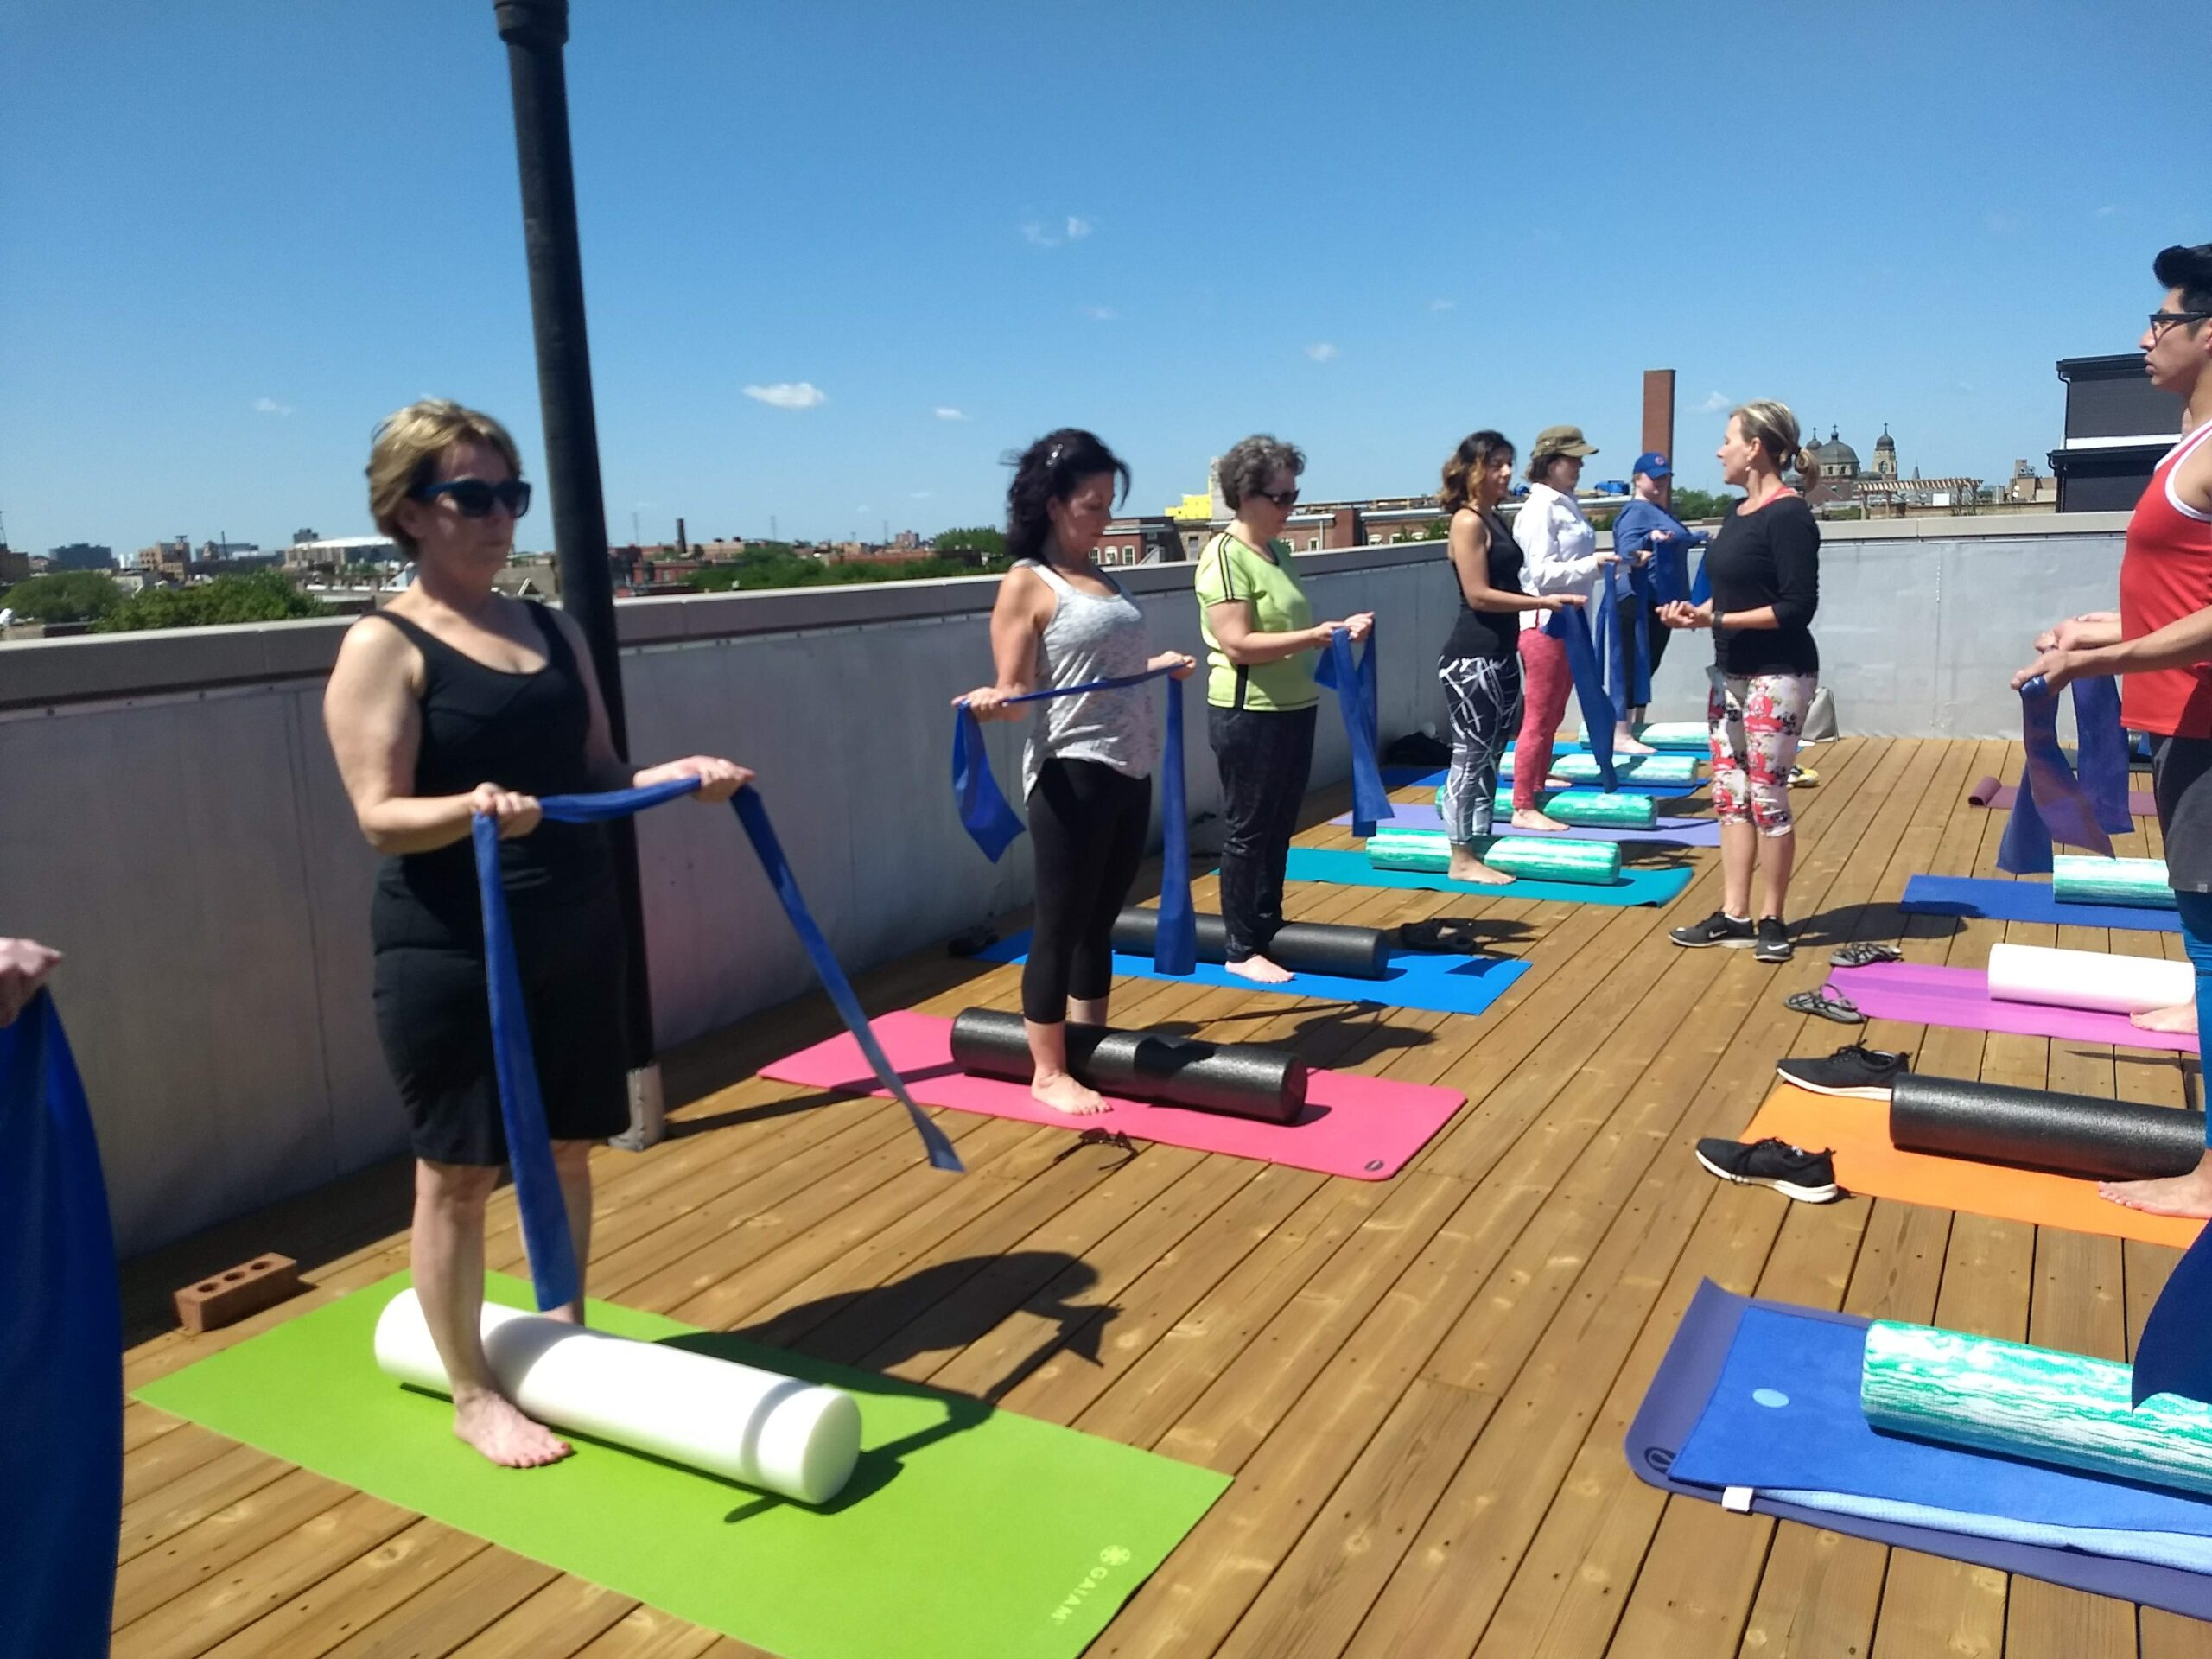 pilates on the roof